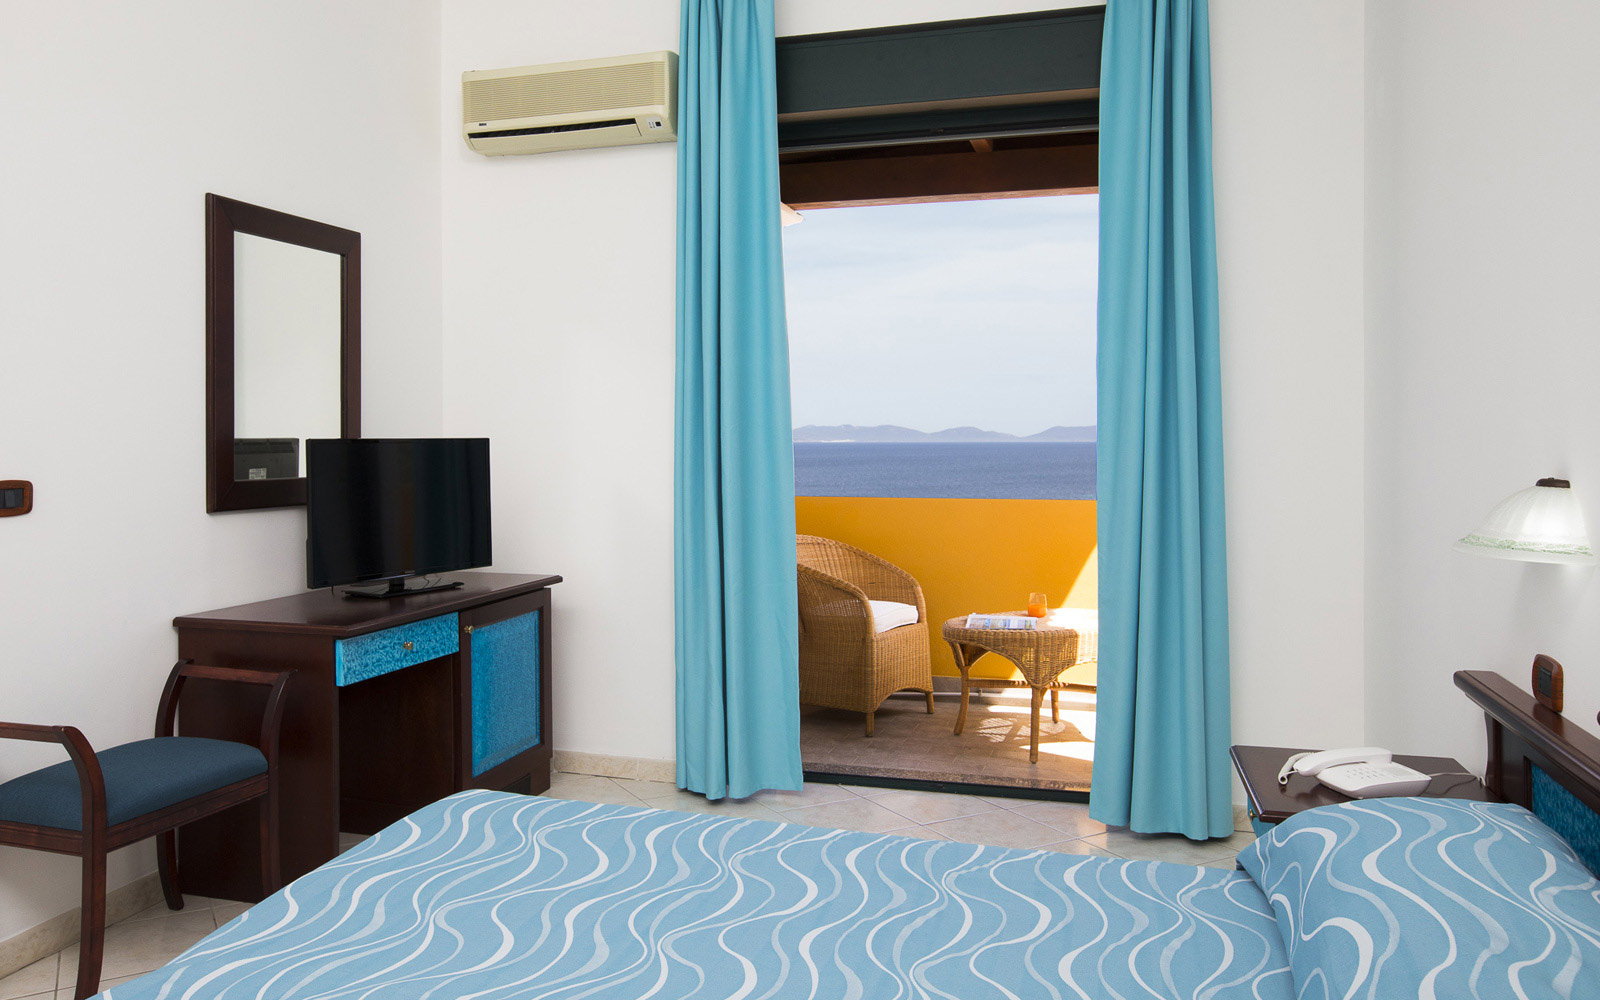 Standard Room with Sea View at Lu Hotel Maladroxia